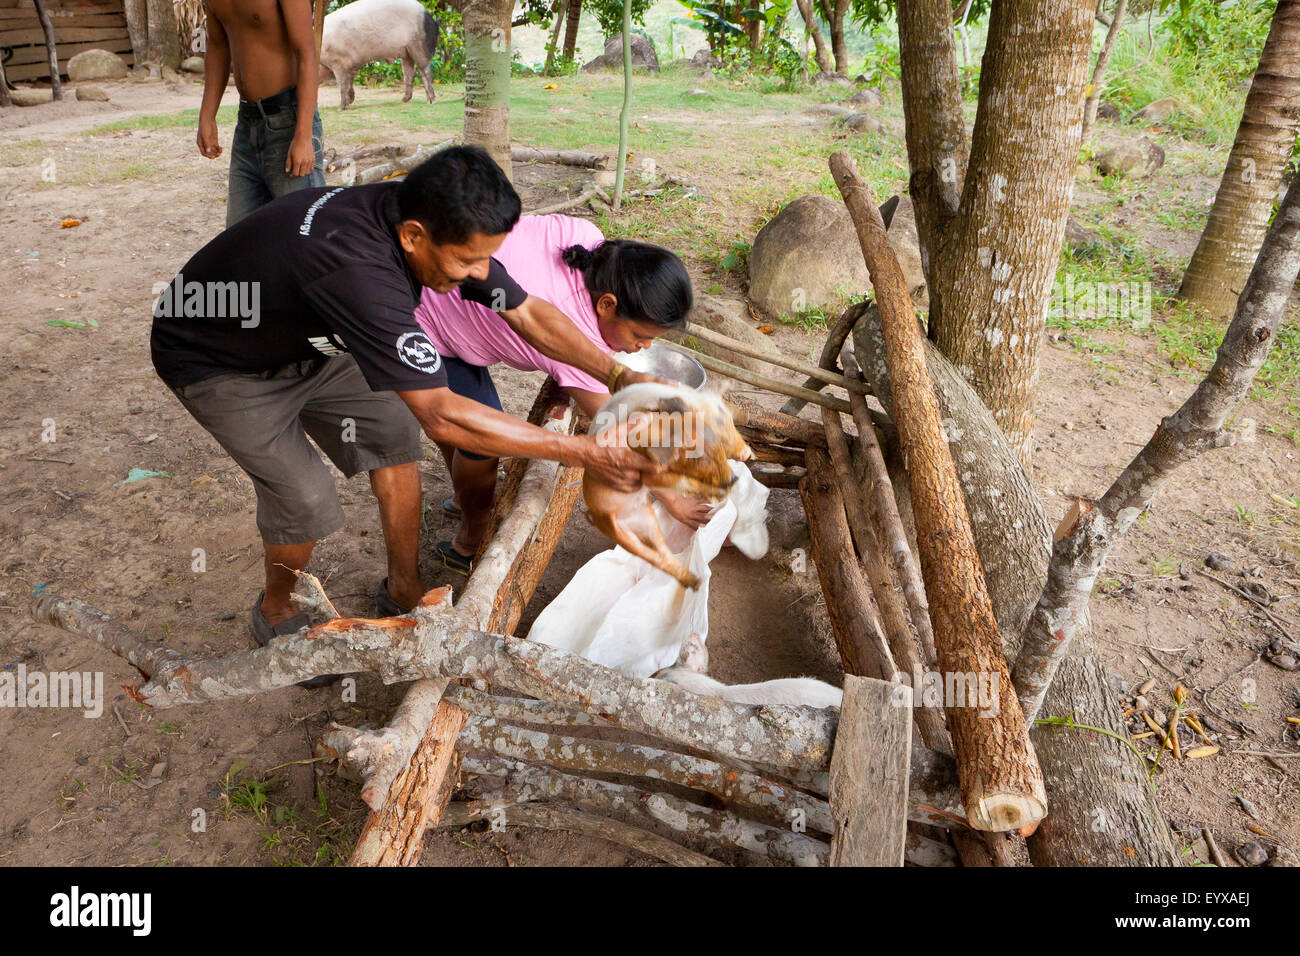 Cleofer Martinez, 54, is holding two of the family's young pigs, in the interior of the Coclé province, - Stock Image